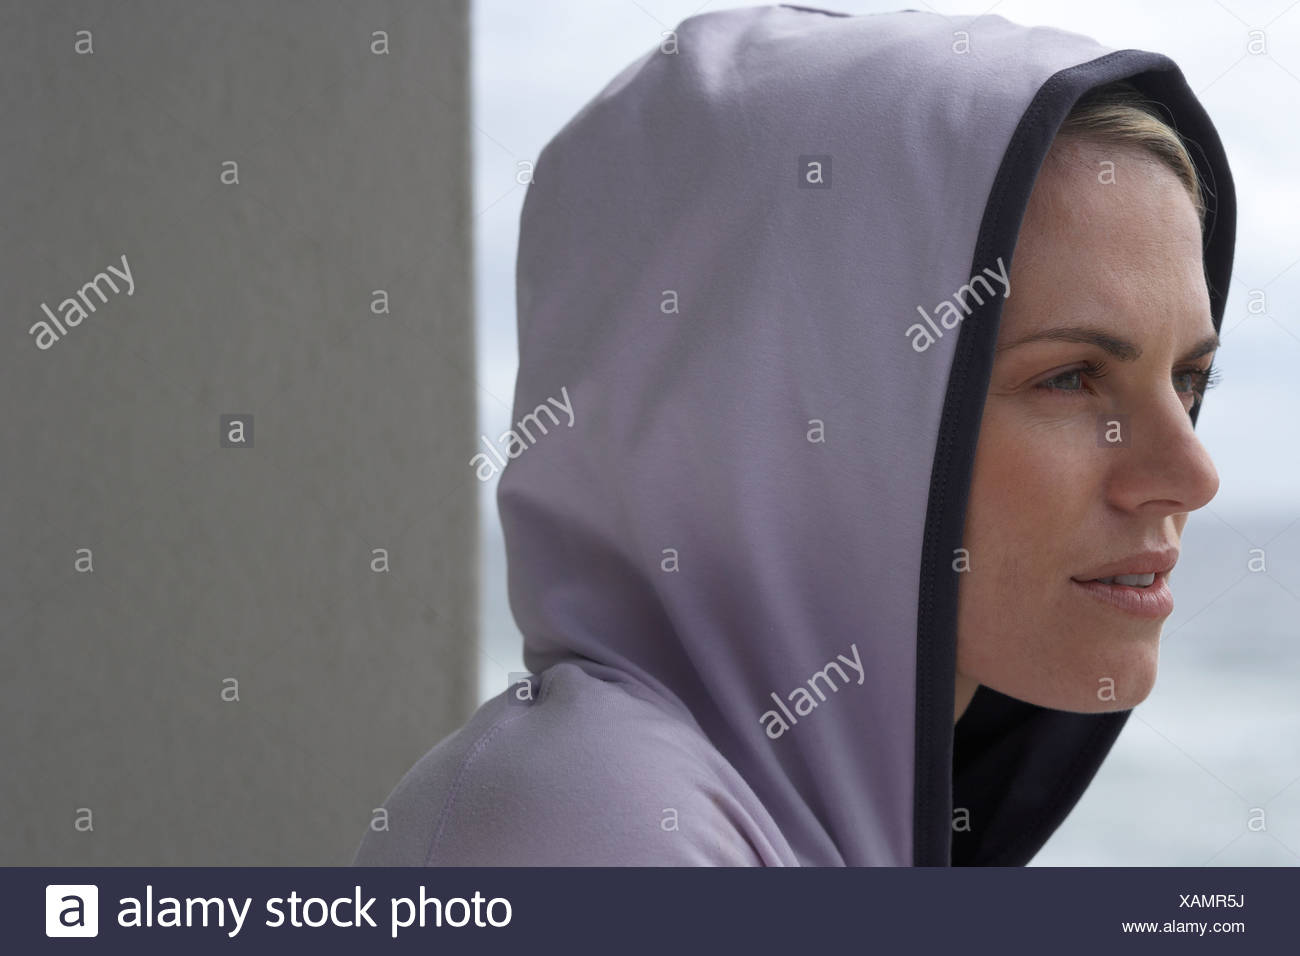 Woman wearing hooded top close up side view - Stock Image